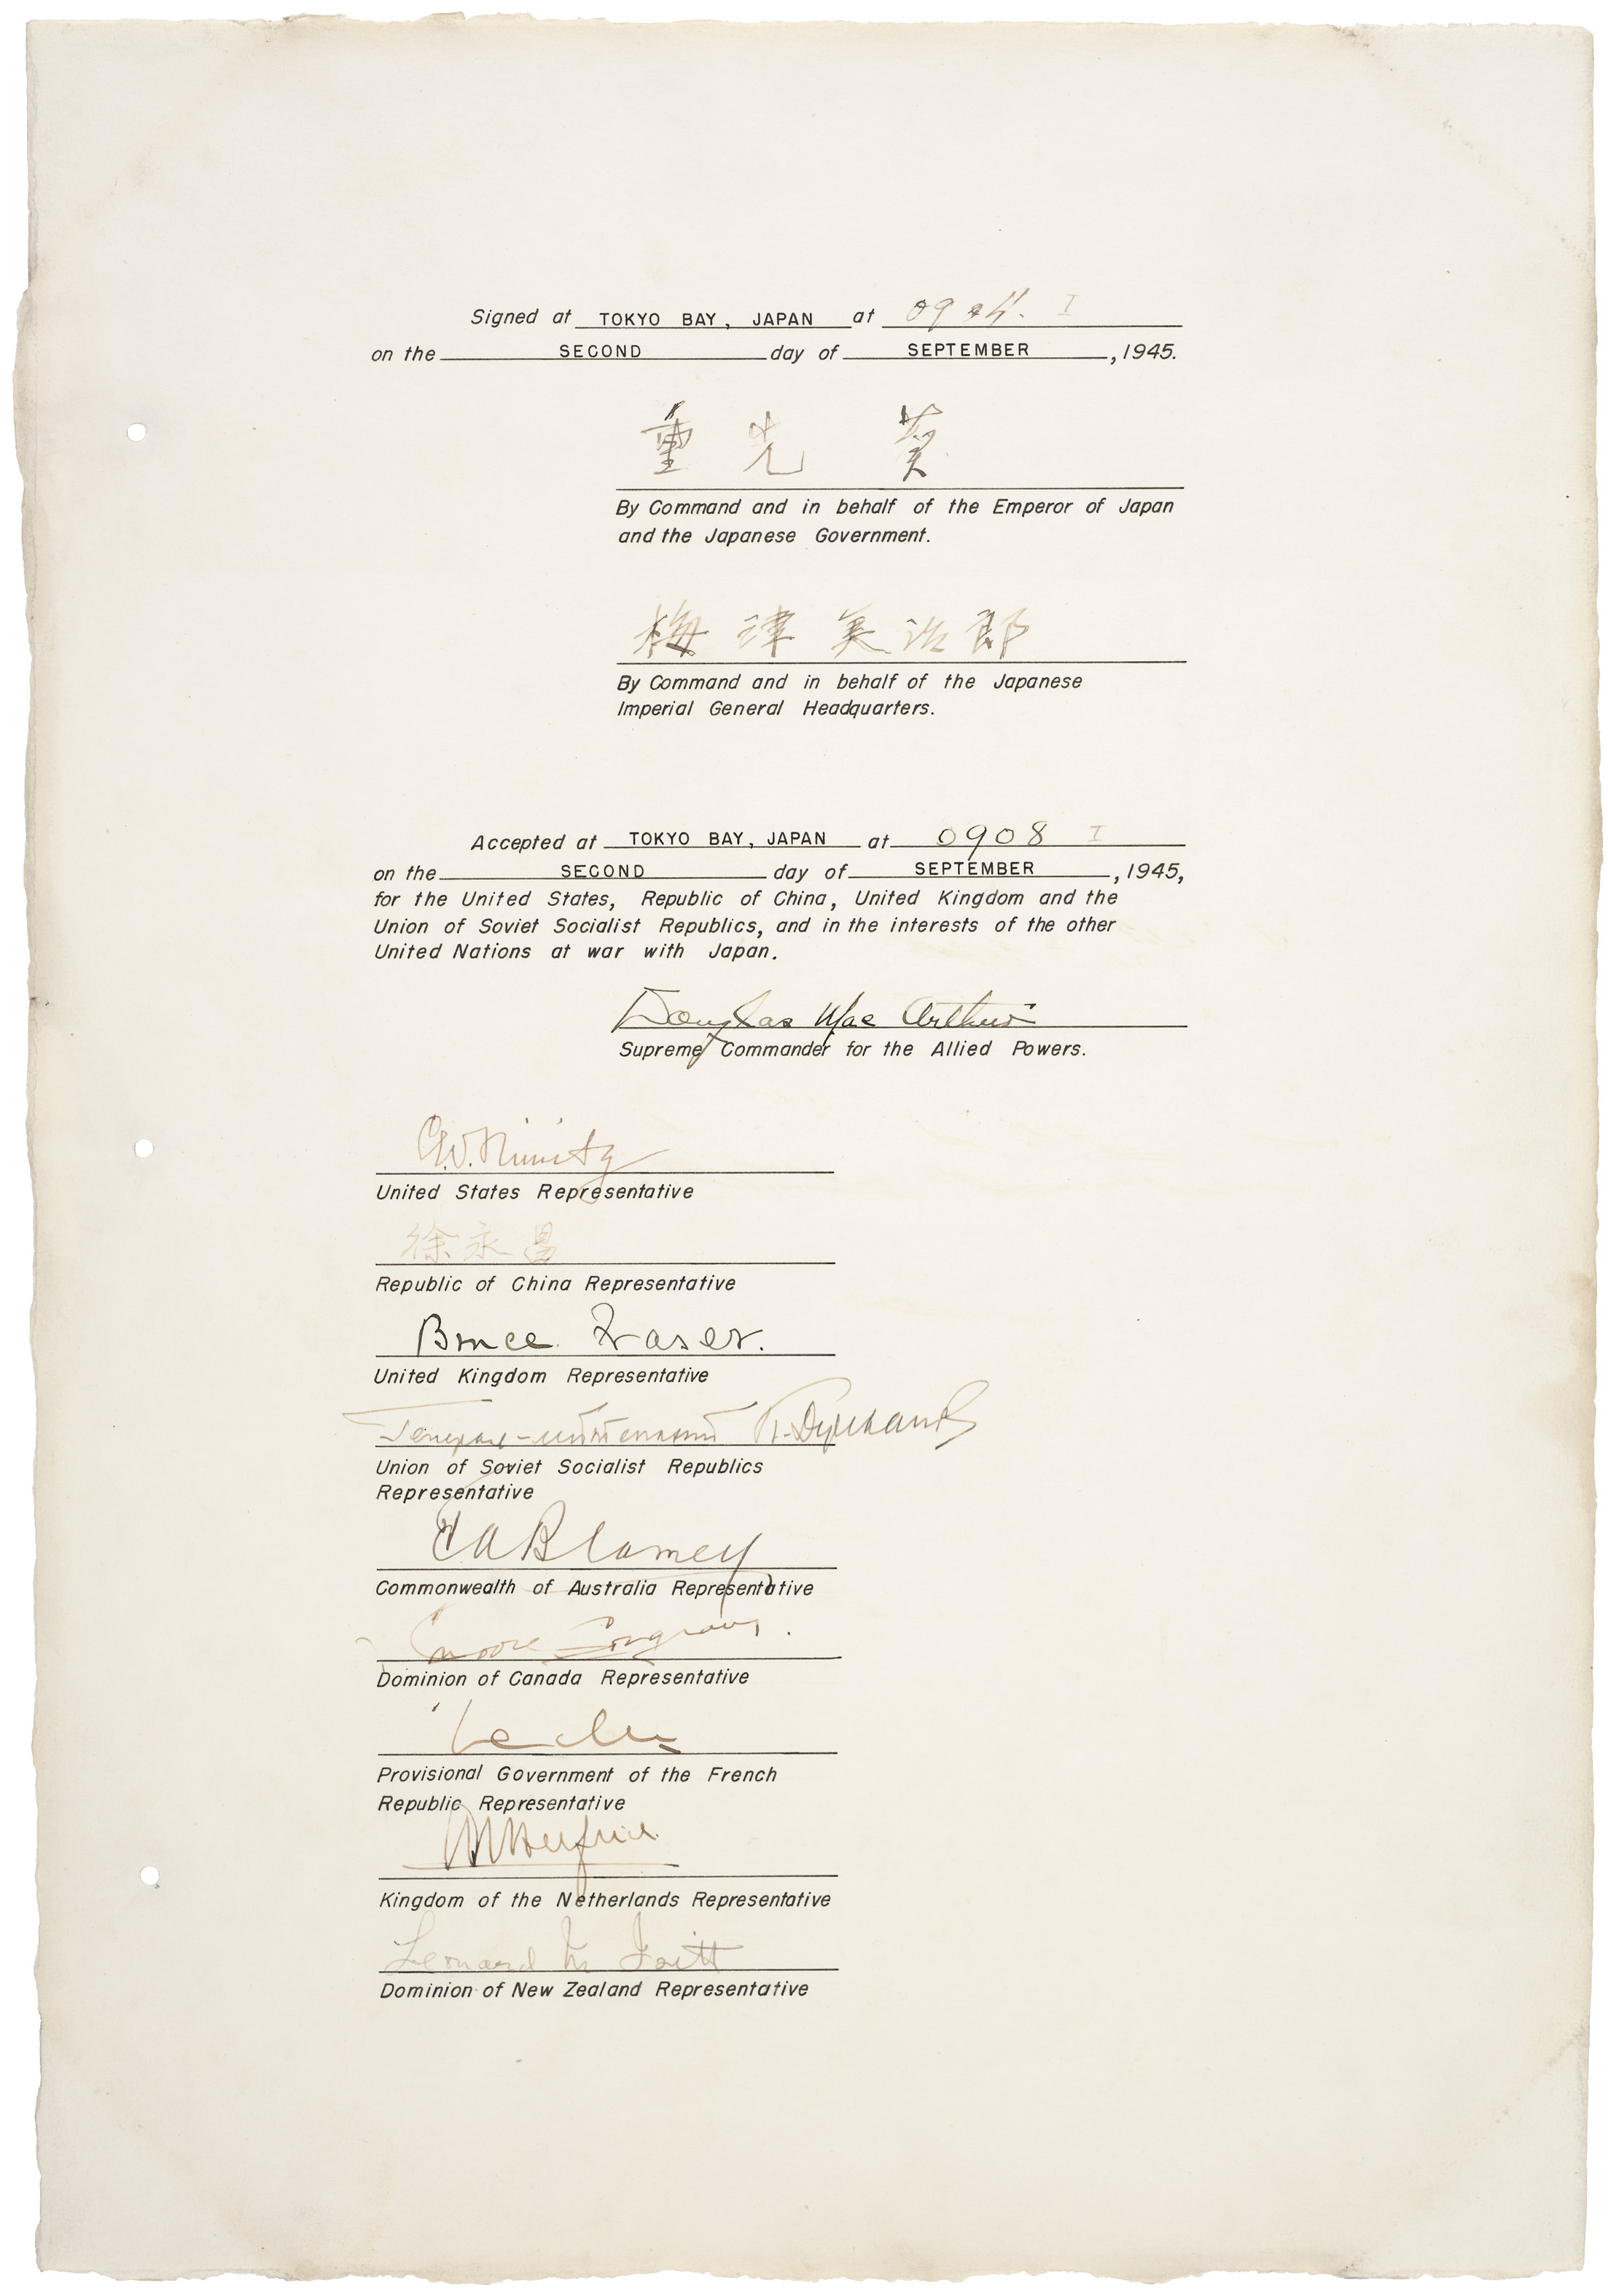 Instrument of Surrender, September 2, 1945, signature page. (Records of the U.S. Joint Chiefs of Staff, National Archives)